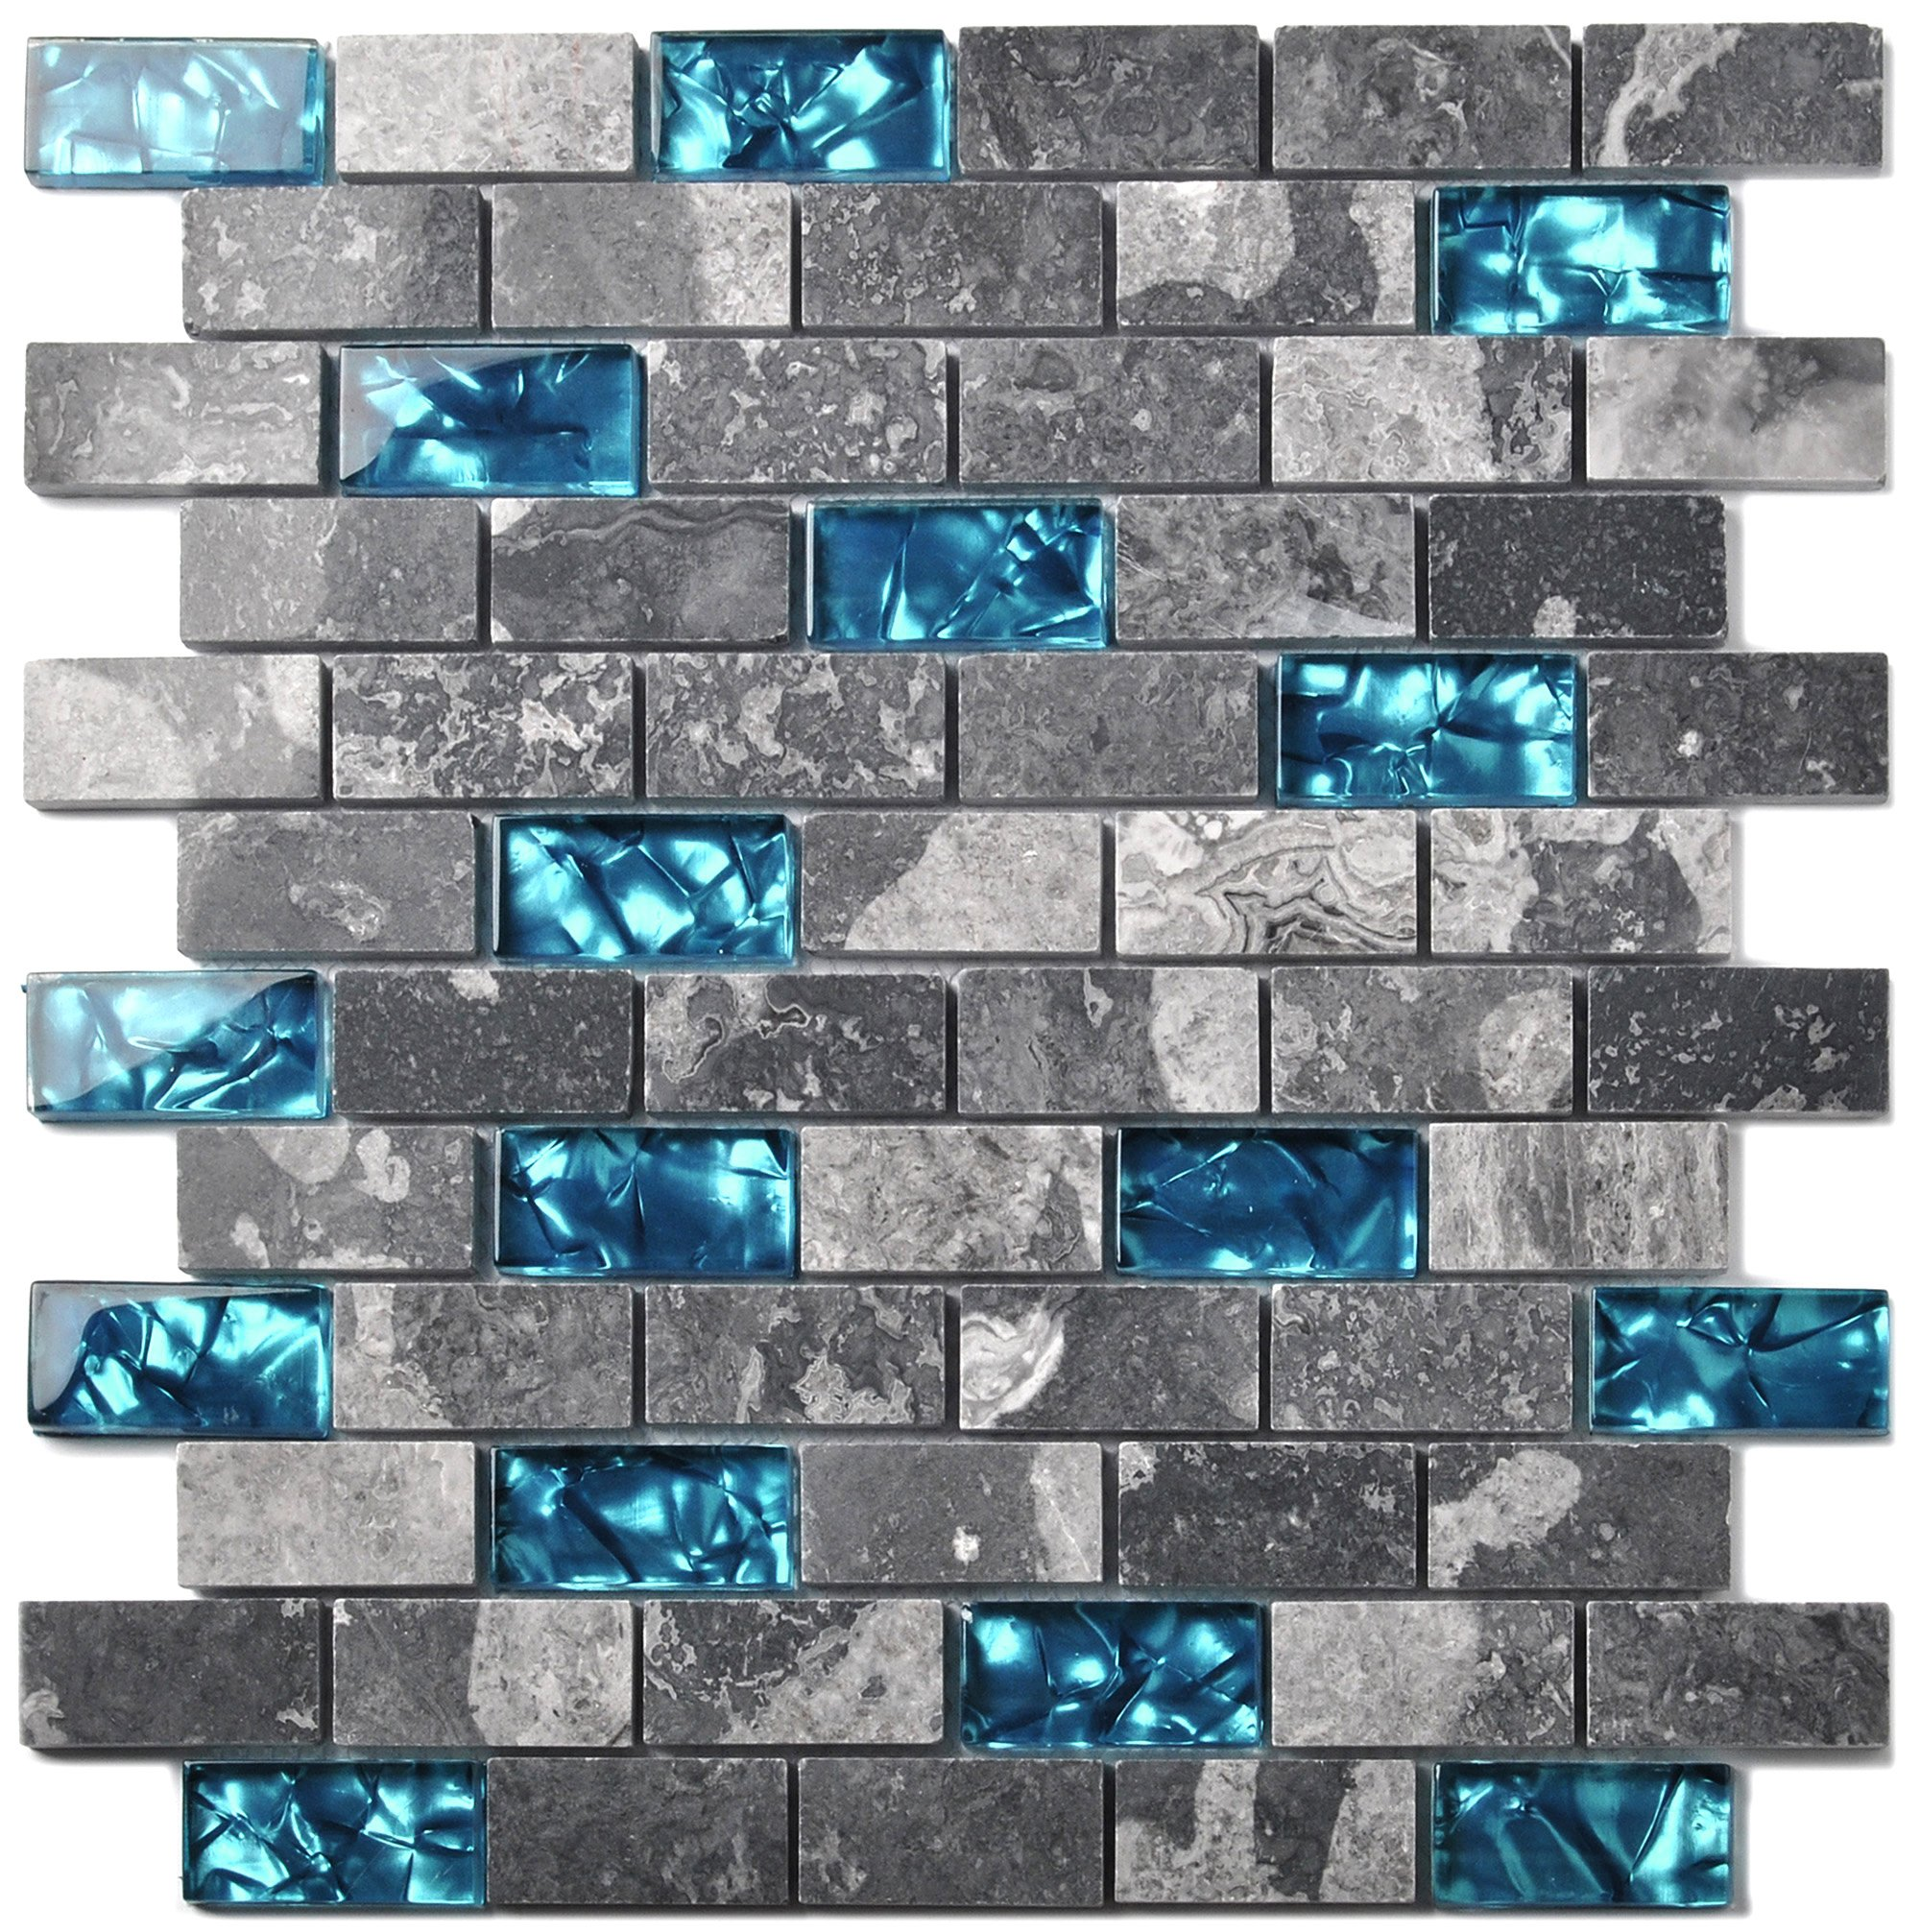 Ocean Teal Blue Glass Nature Stone Tile Kitchen Backsplash 3D Bath Shower Accent Wall Decor Gray Wave Marble 1 x 2 Subway Art Mosaics TSTNB03 (5 PCS [11.8'' X 11.8''/Each]) by TST MOSAIC TILES